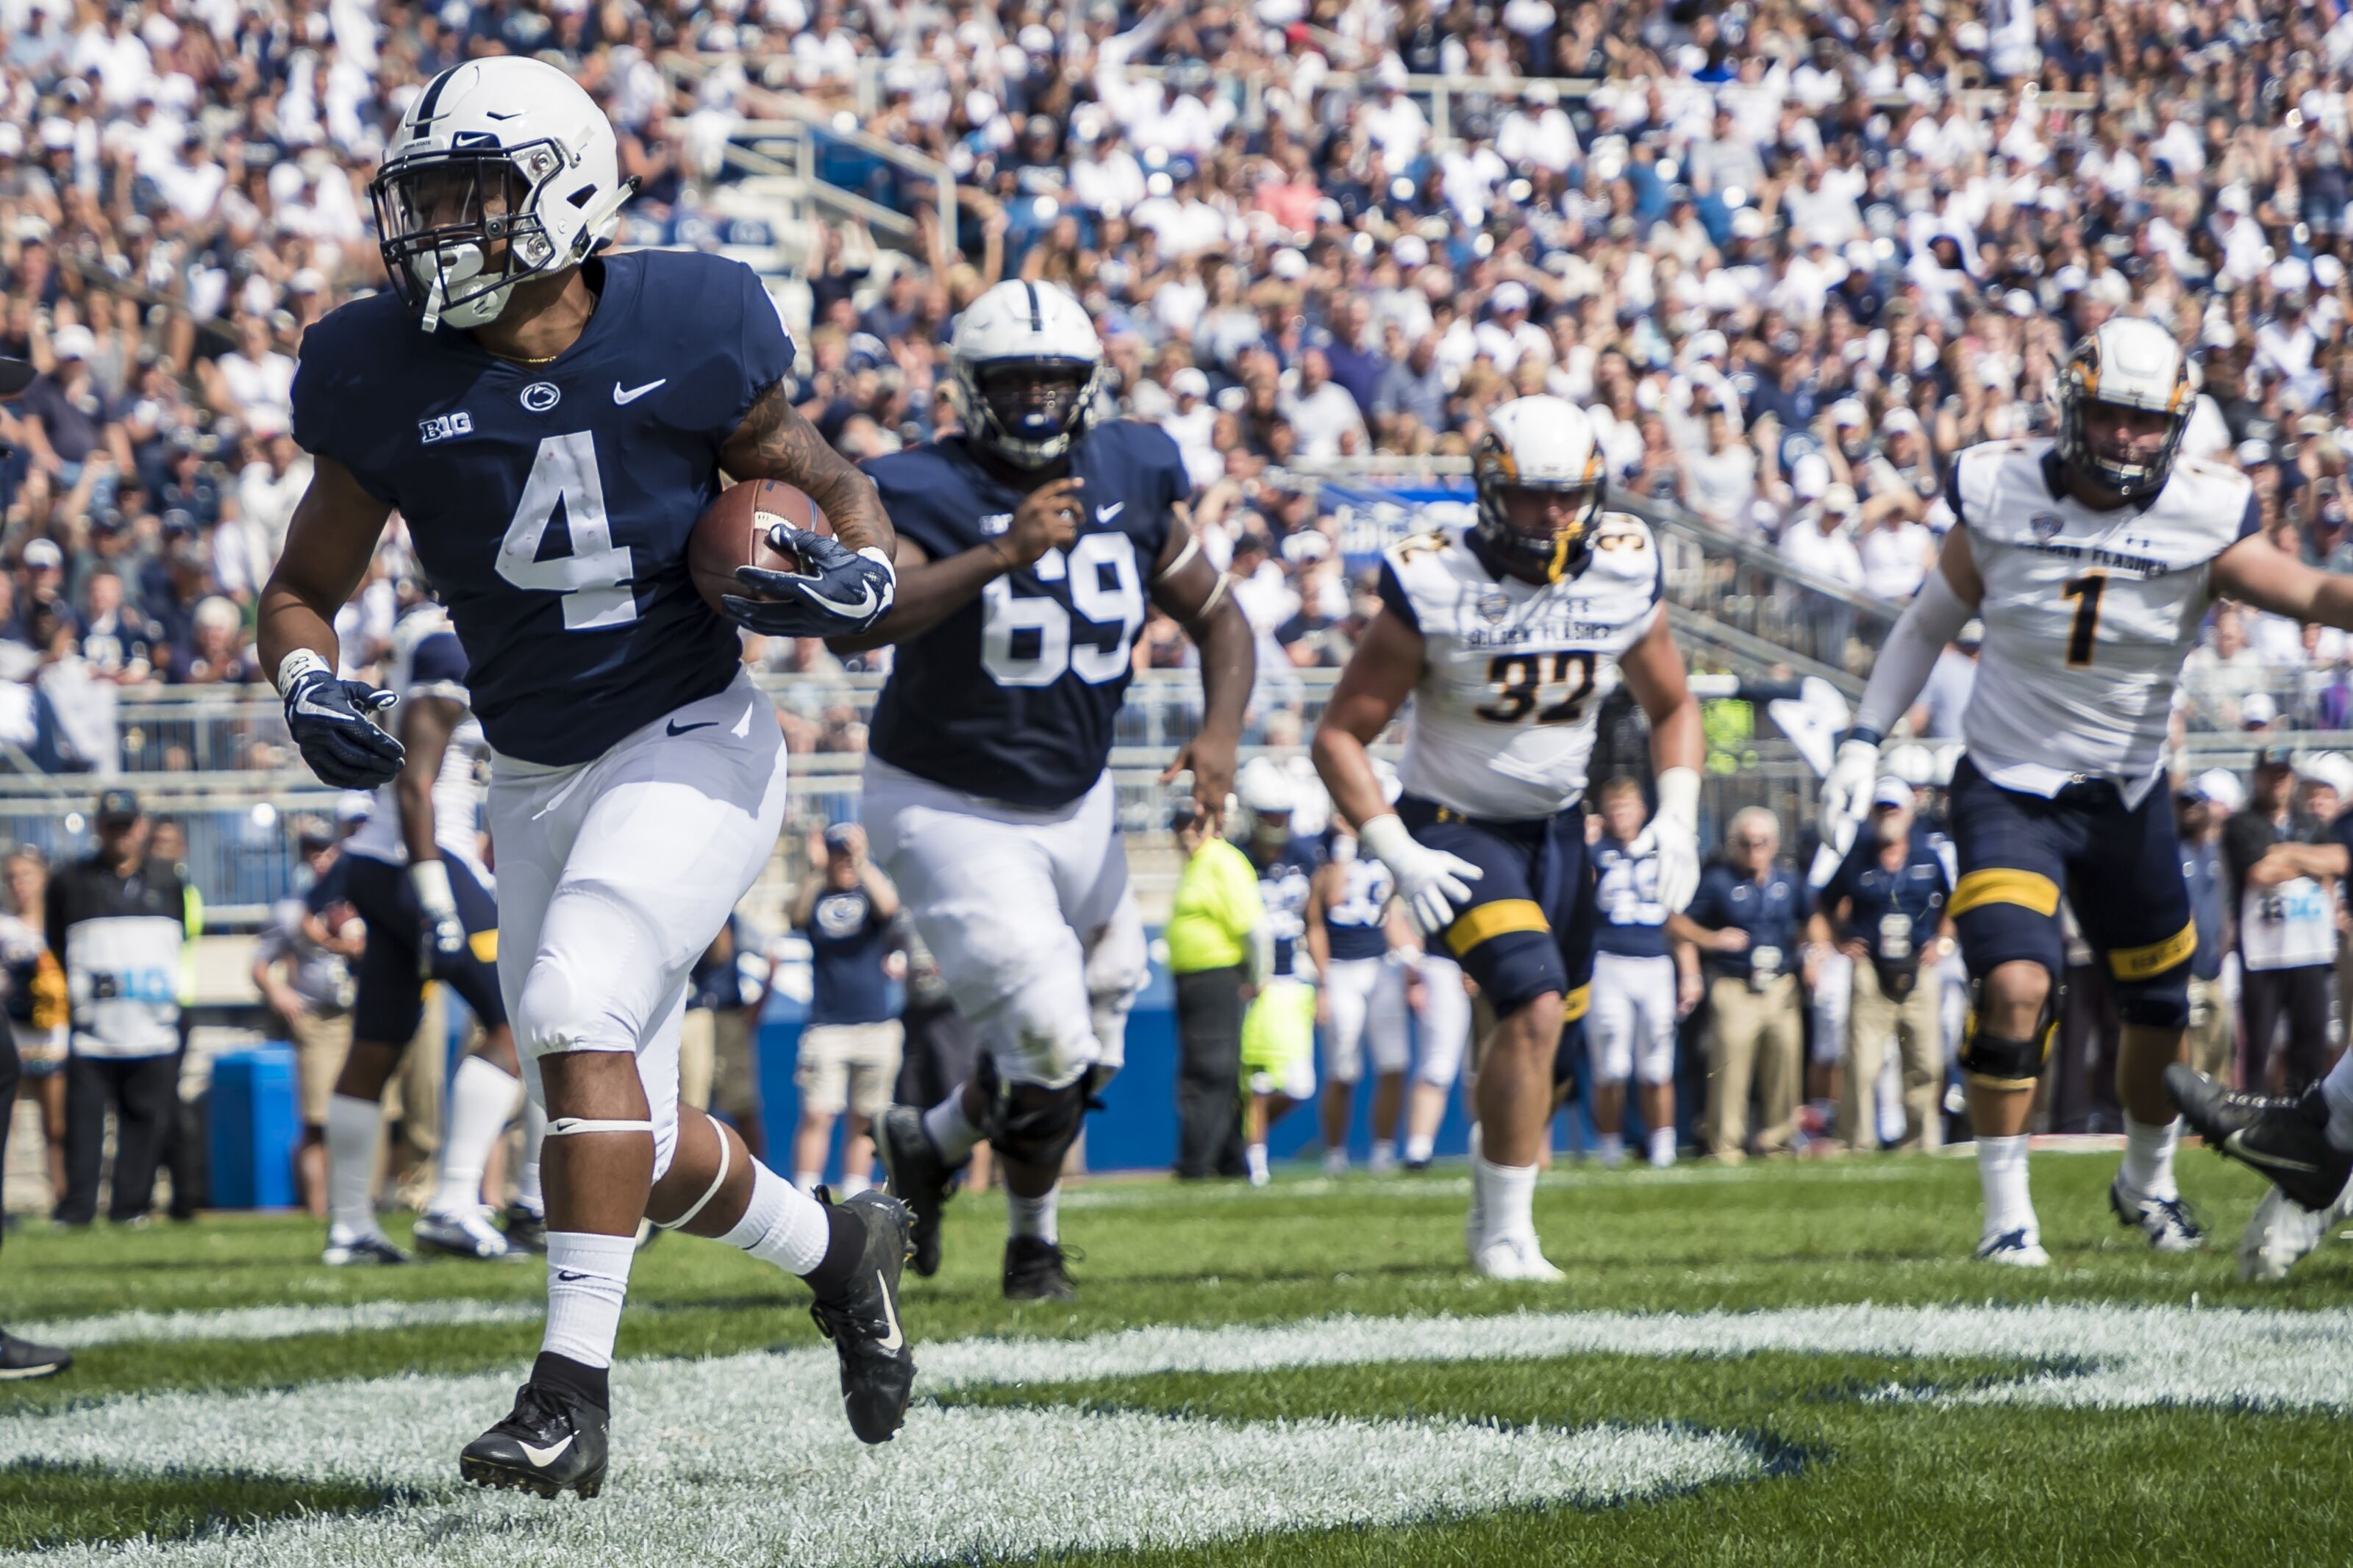 Kirk Herbstreit believes Penn State football doesn't have question marks on offense